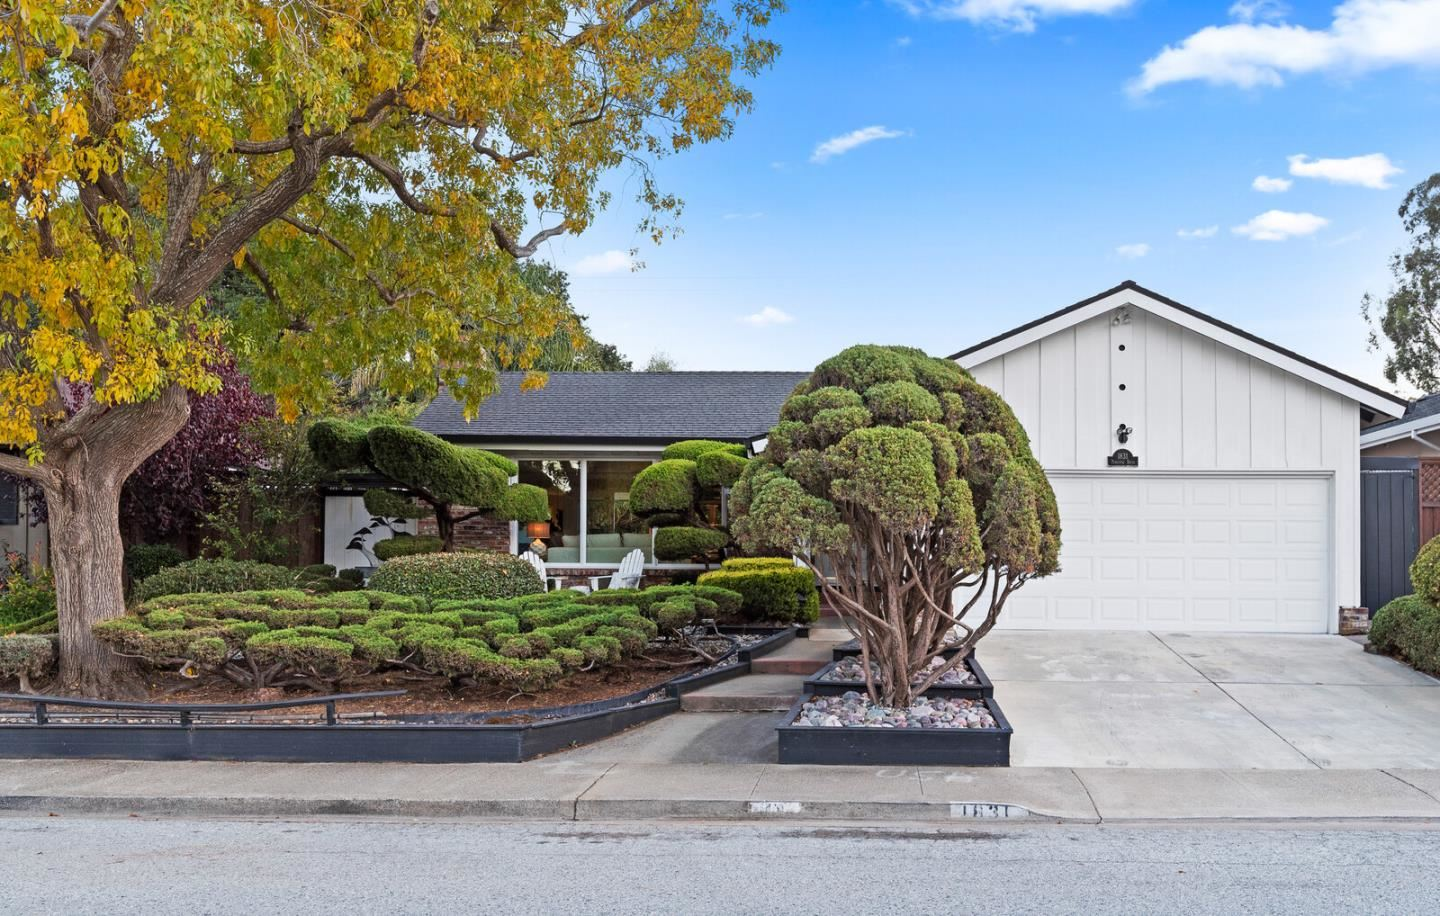 Photo for 1831 Parkview DR, SAN BRUNO, CA 94066 (MLS # ML81821080)